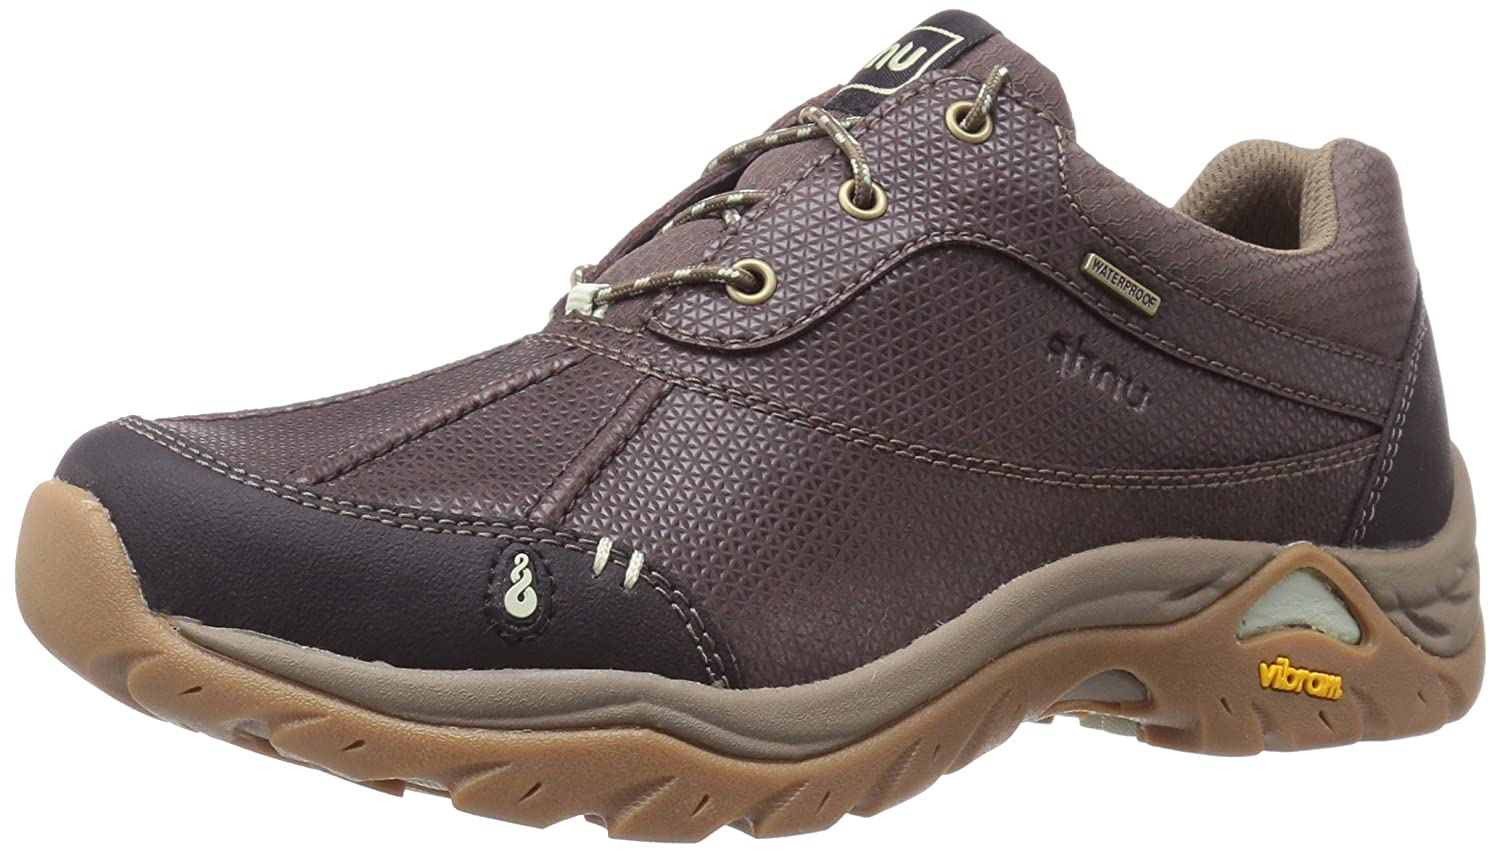 Ahnu Women's Calaveras Waterproof Hiking Shoe B018VLT2J4 9 M US|Cortado